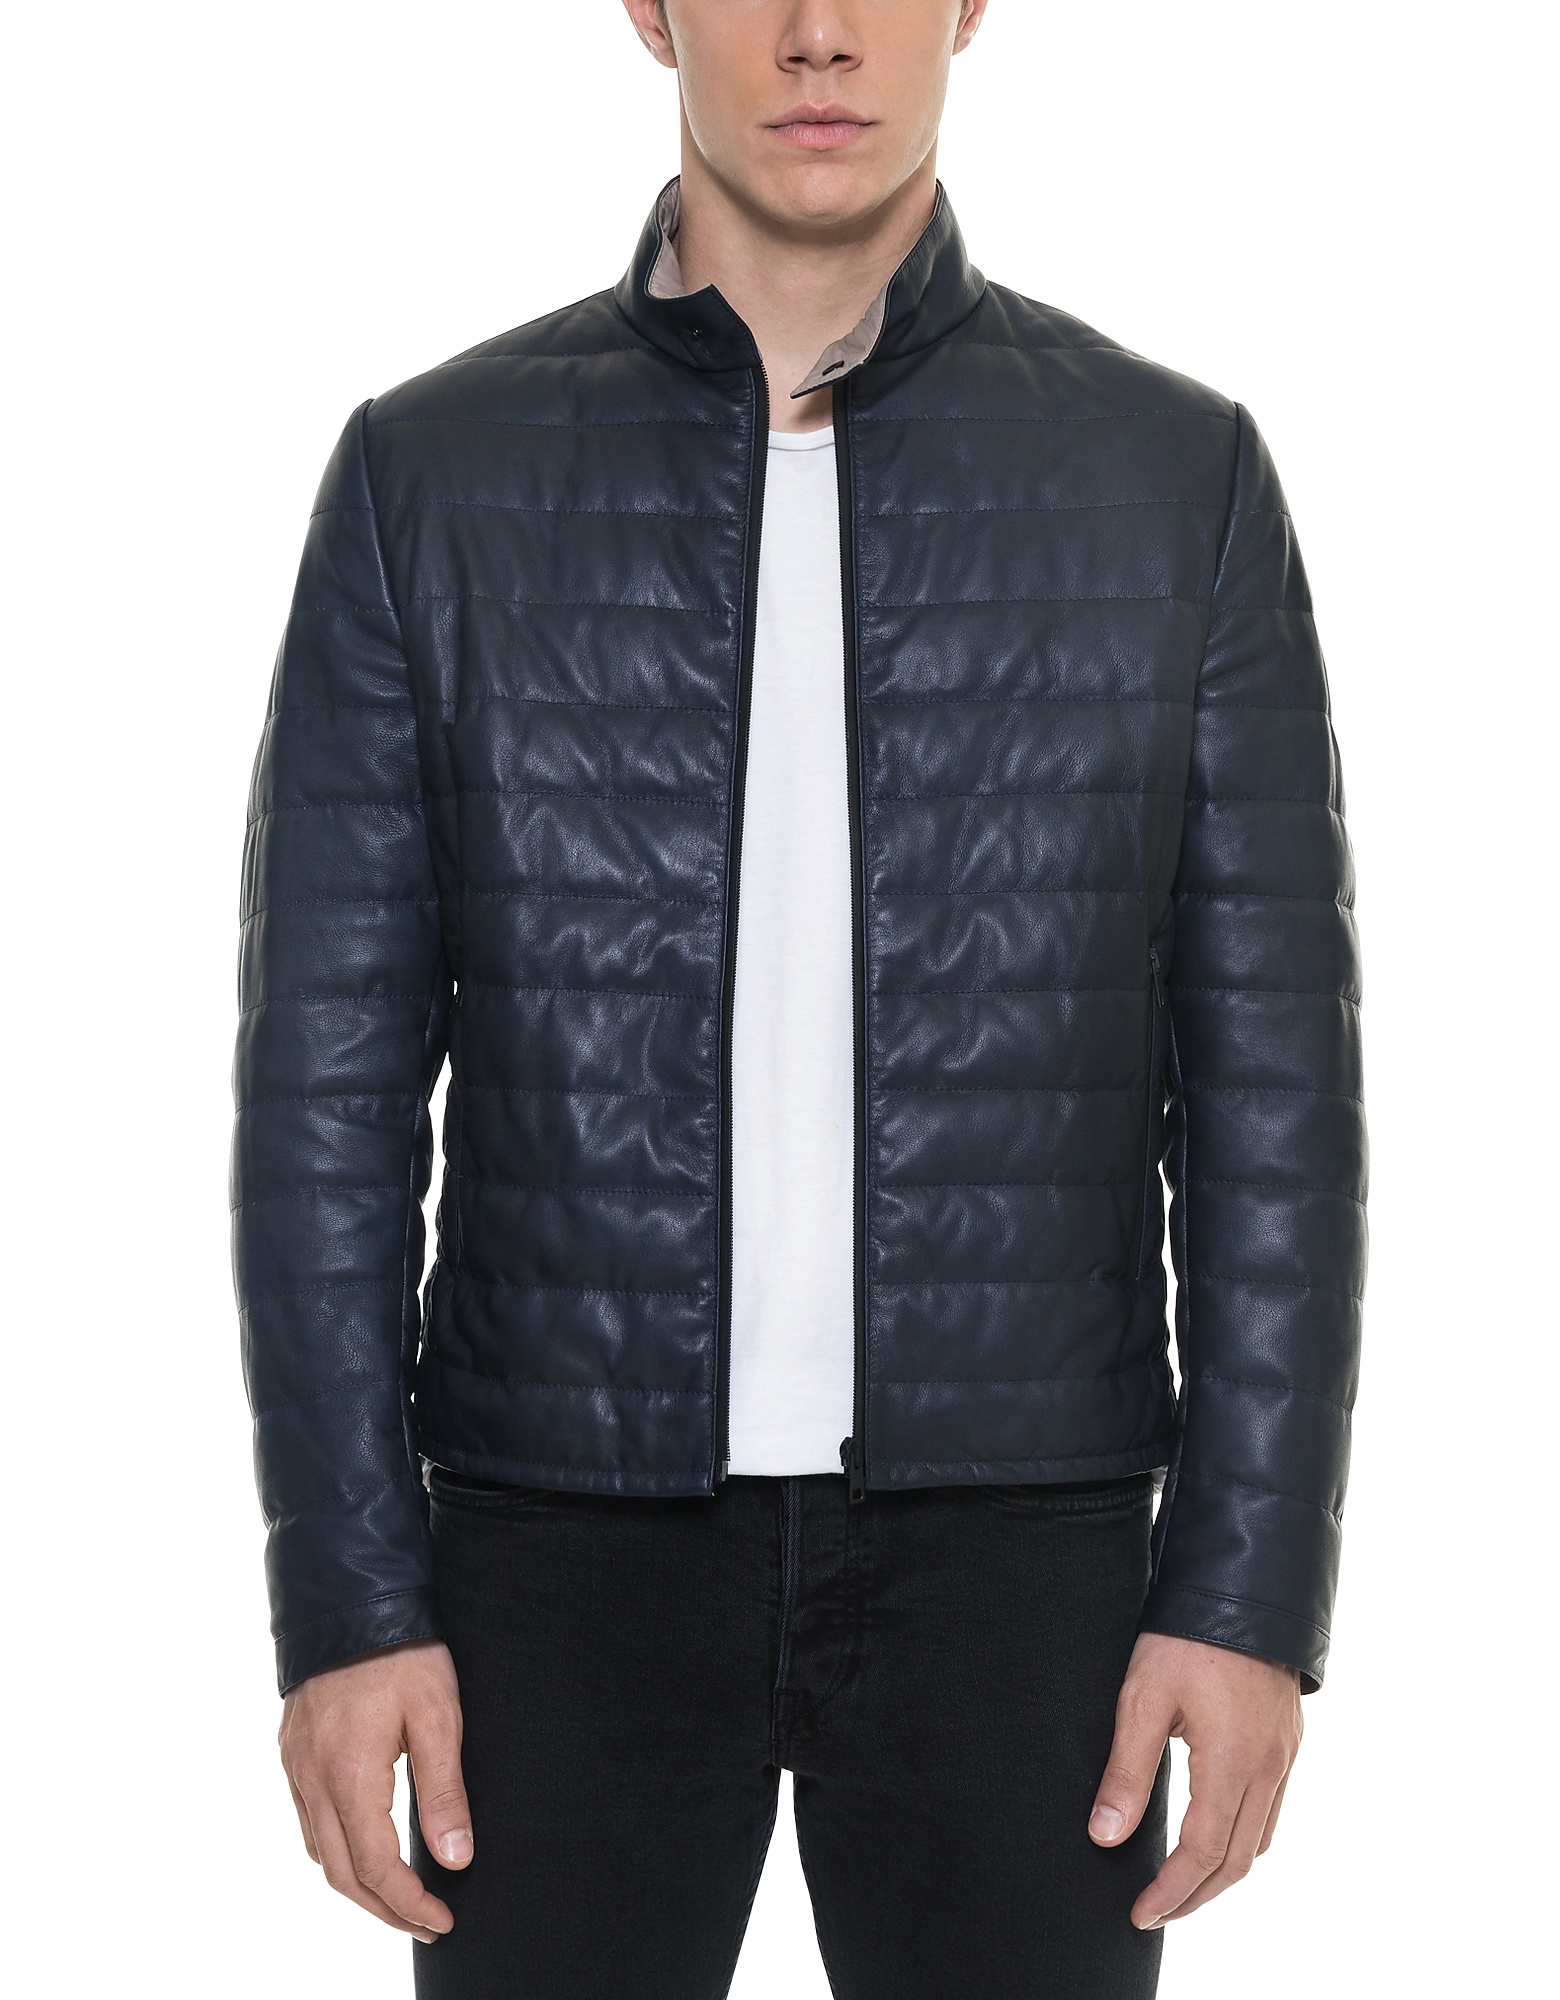 Forzieri Leather Jackets, Dark Blue Quilted Leather Men's Jacket